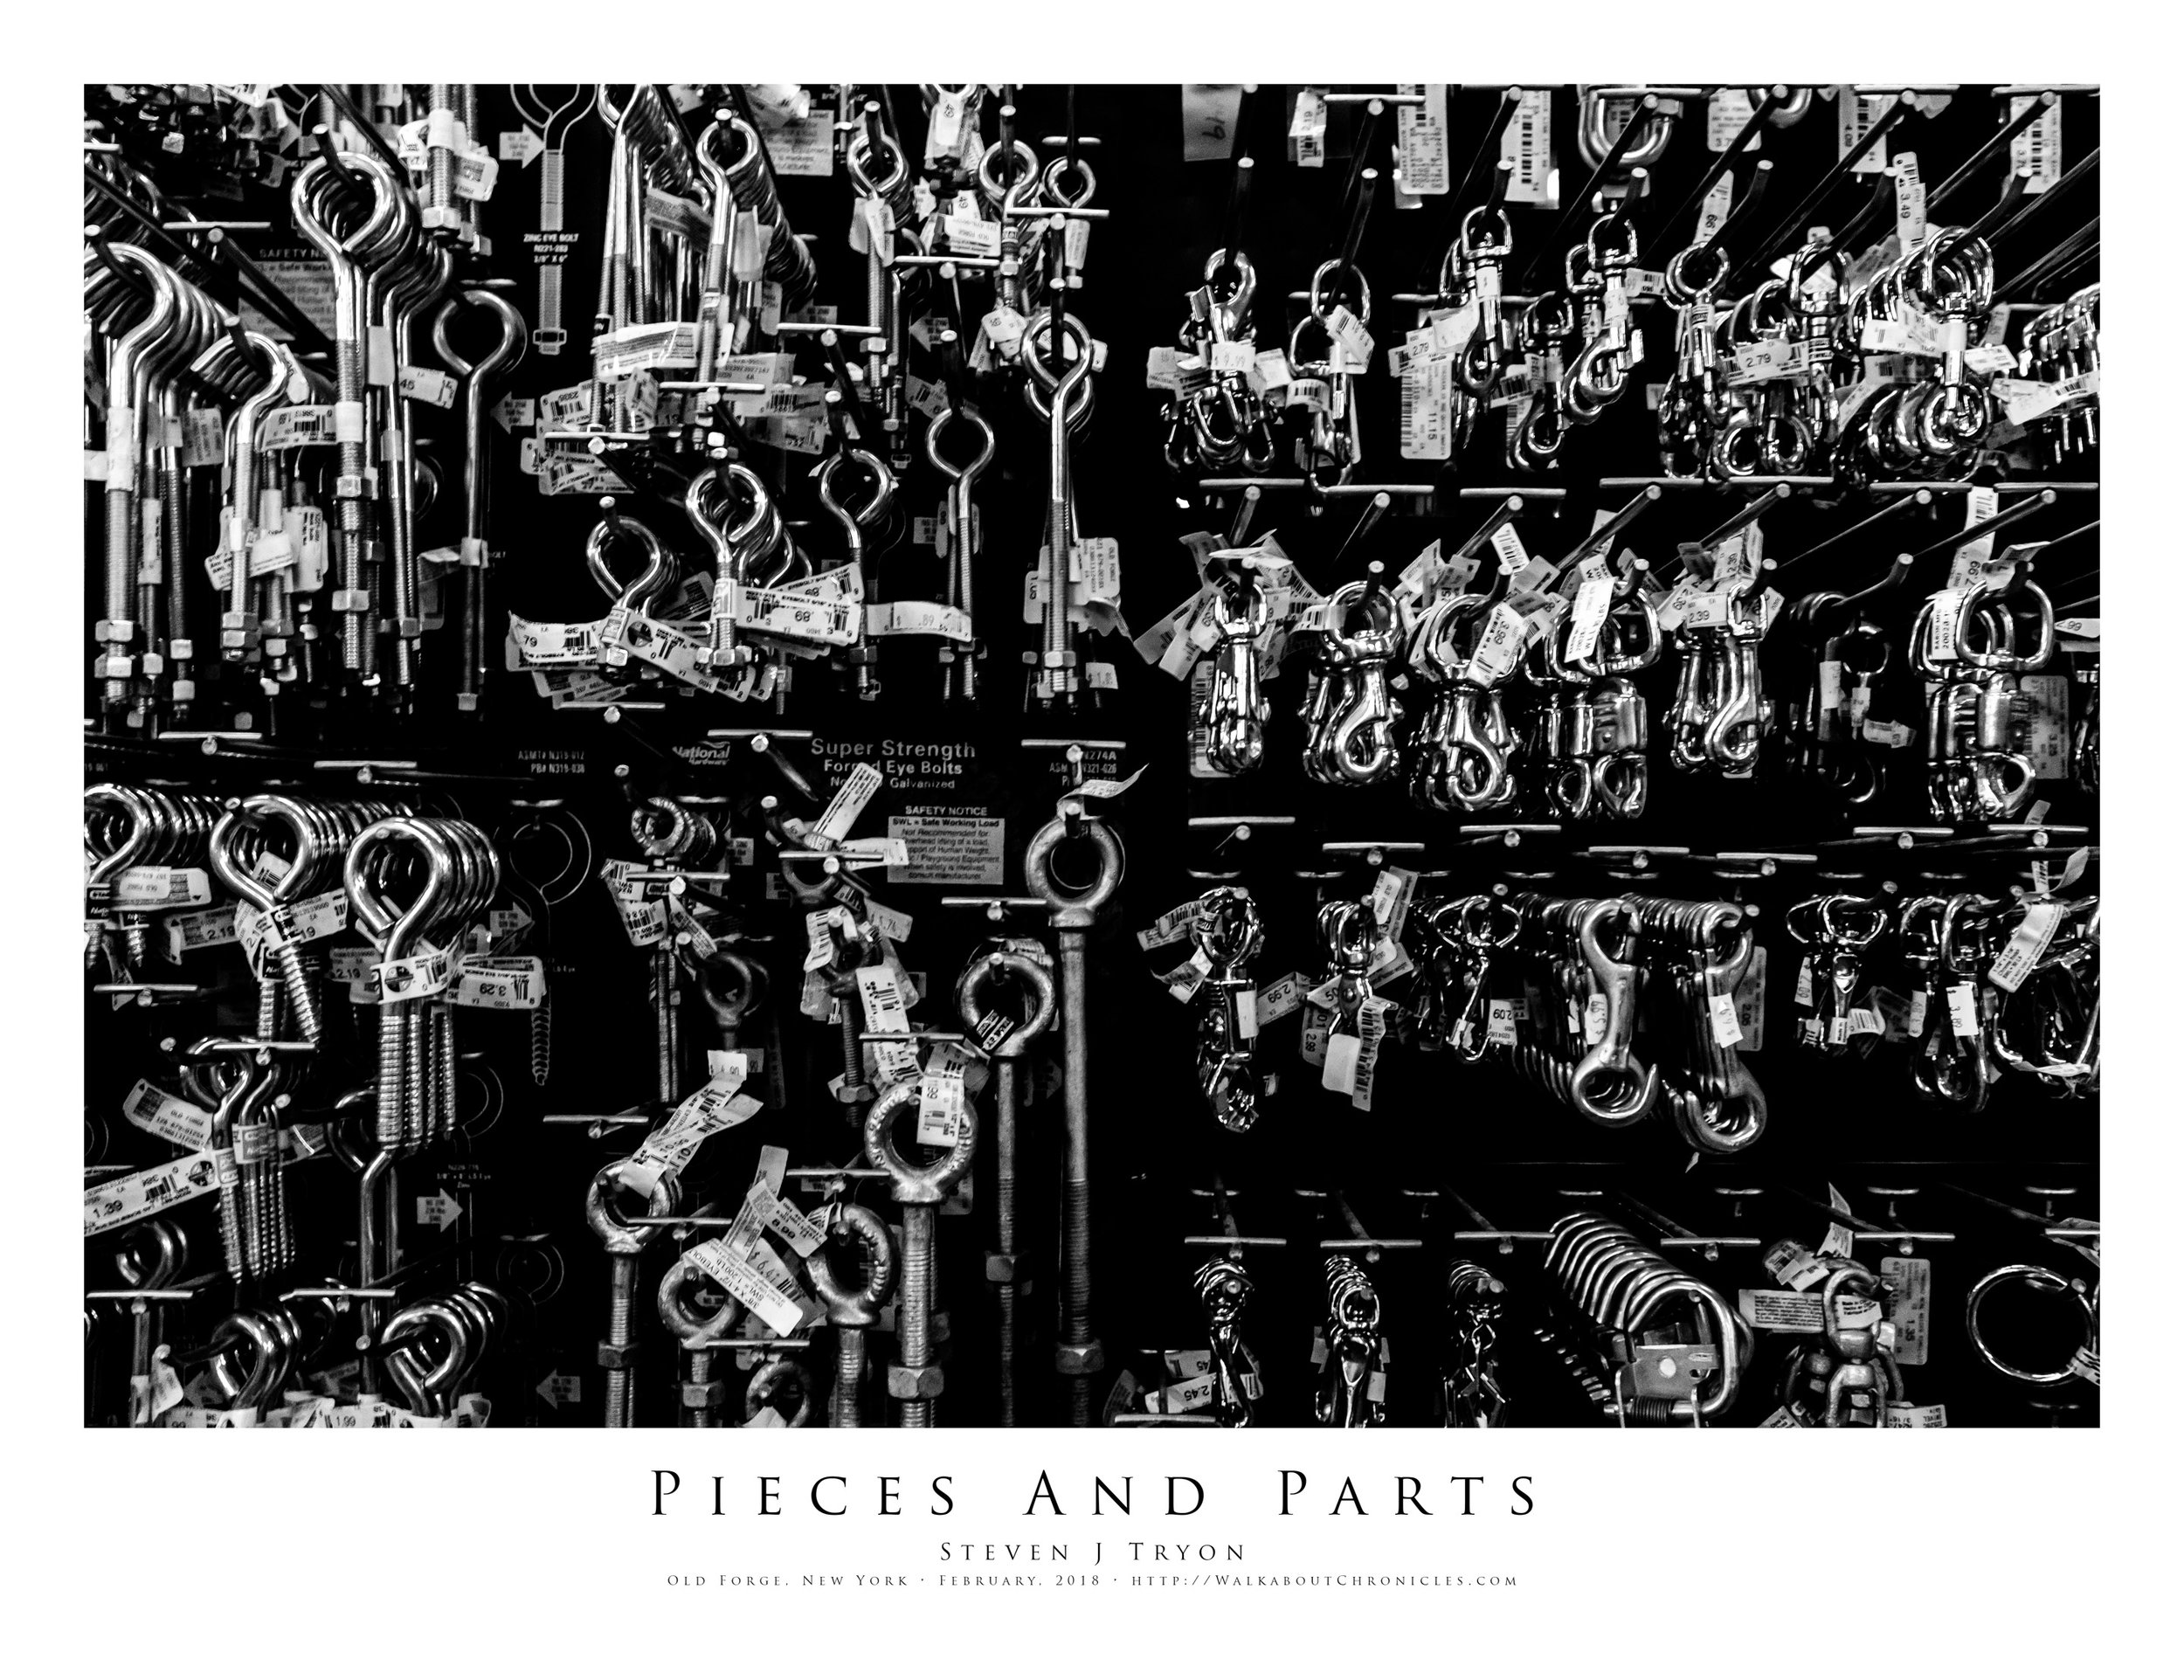 Pieces And Parts